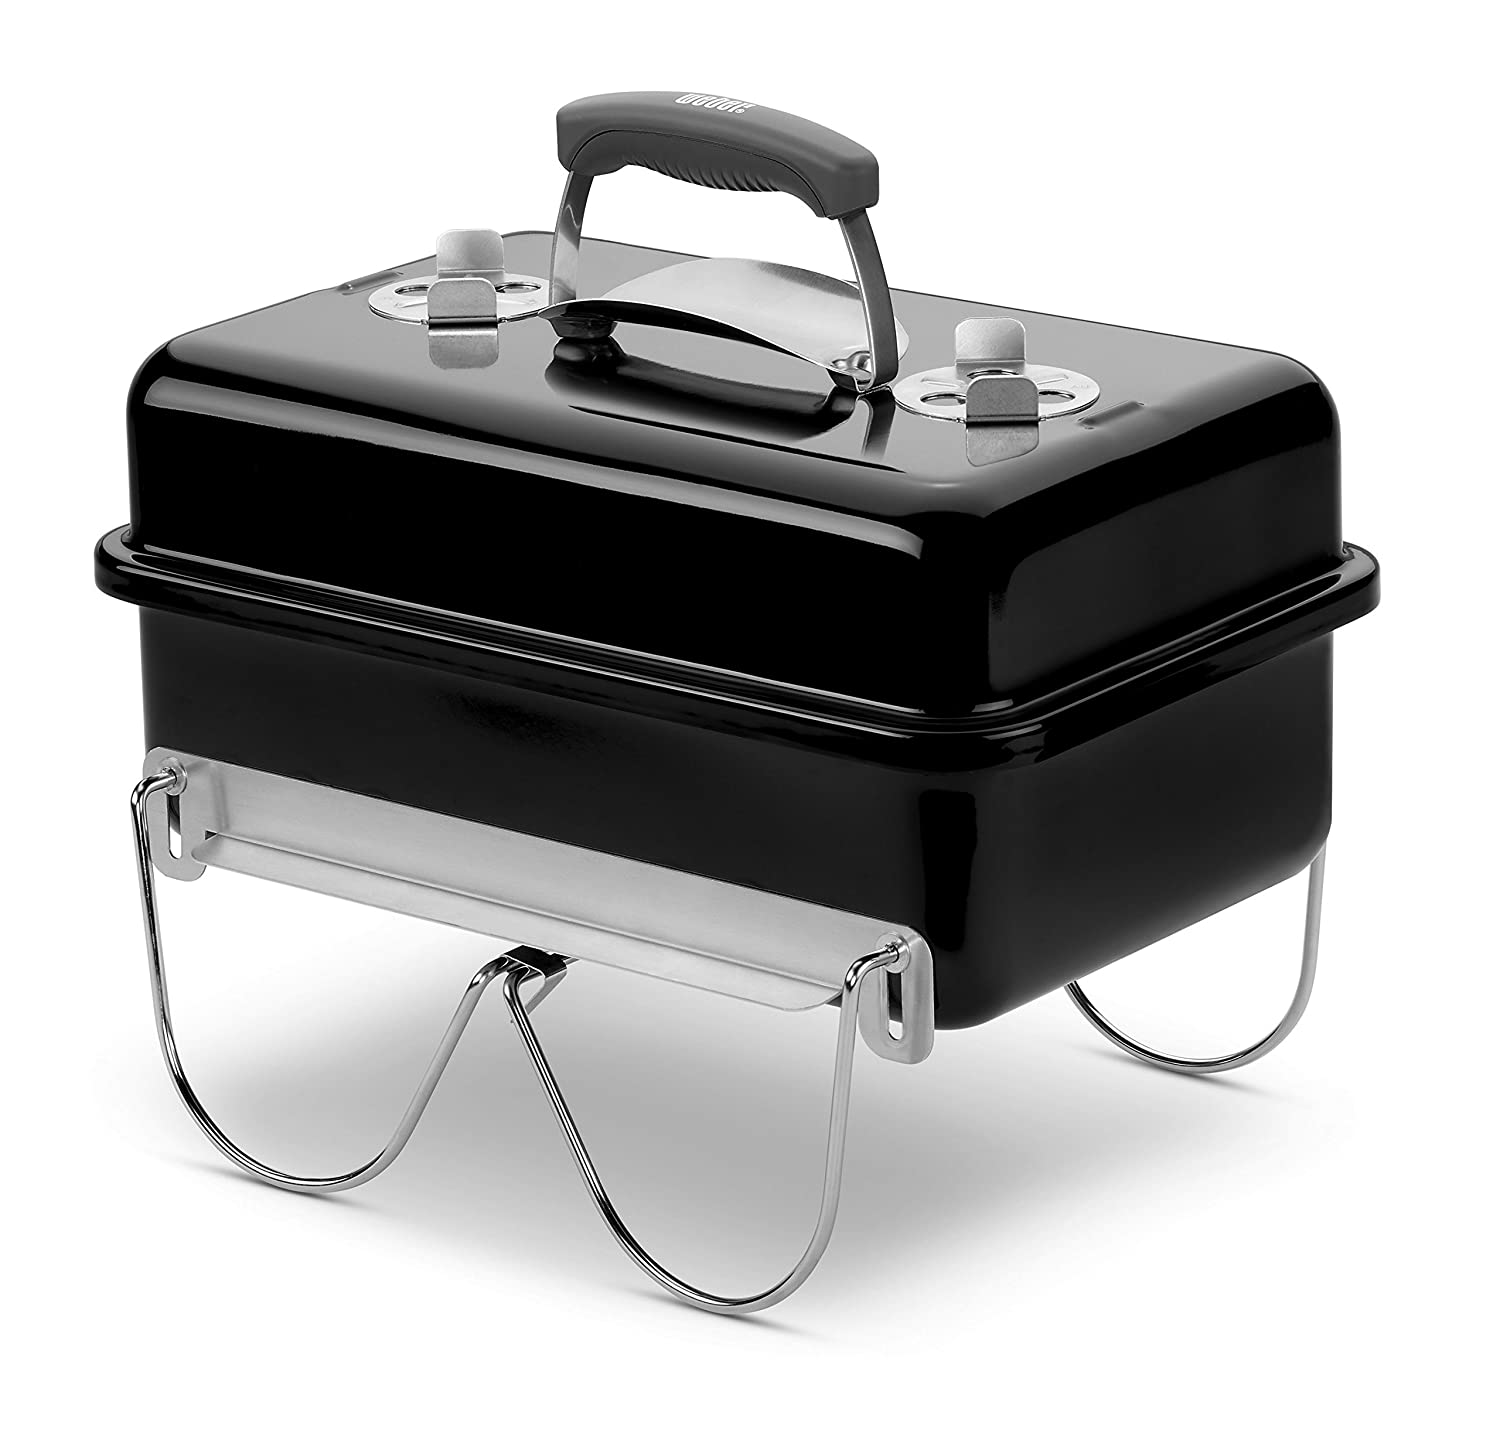 Weber BBQ –&nbsp Go-Anywhere Black. Black Weber Spain 1131004